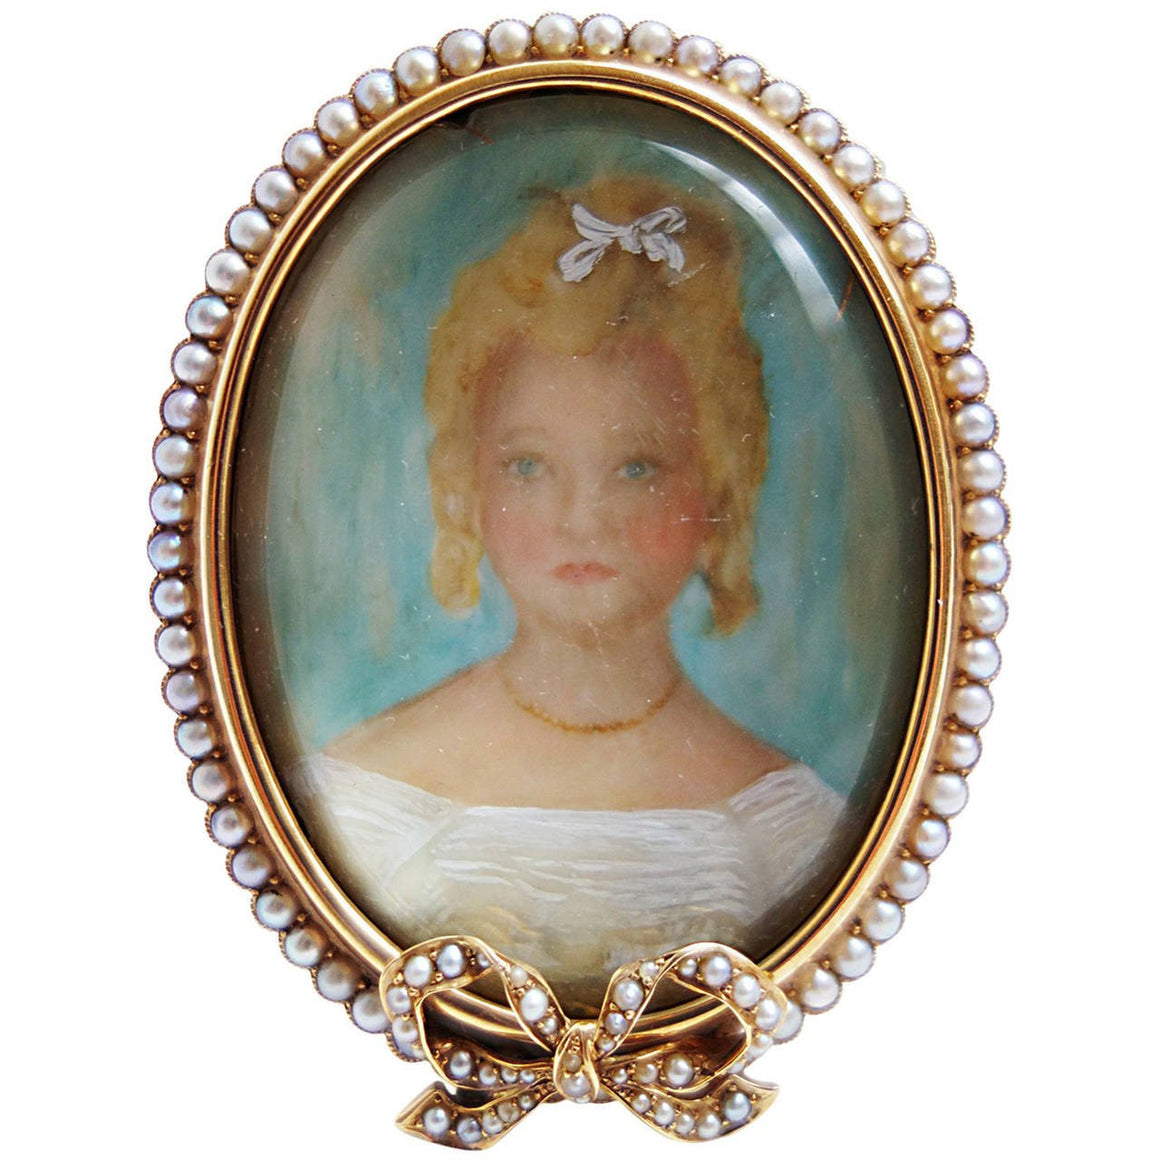 Antique Pearl Gold Portrait Miniature Picture Frame